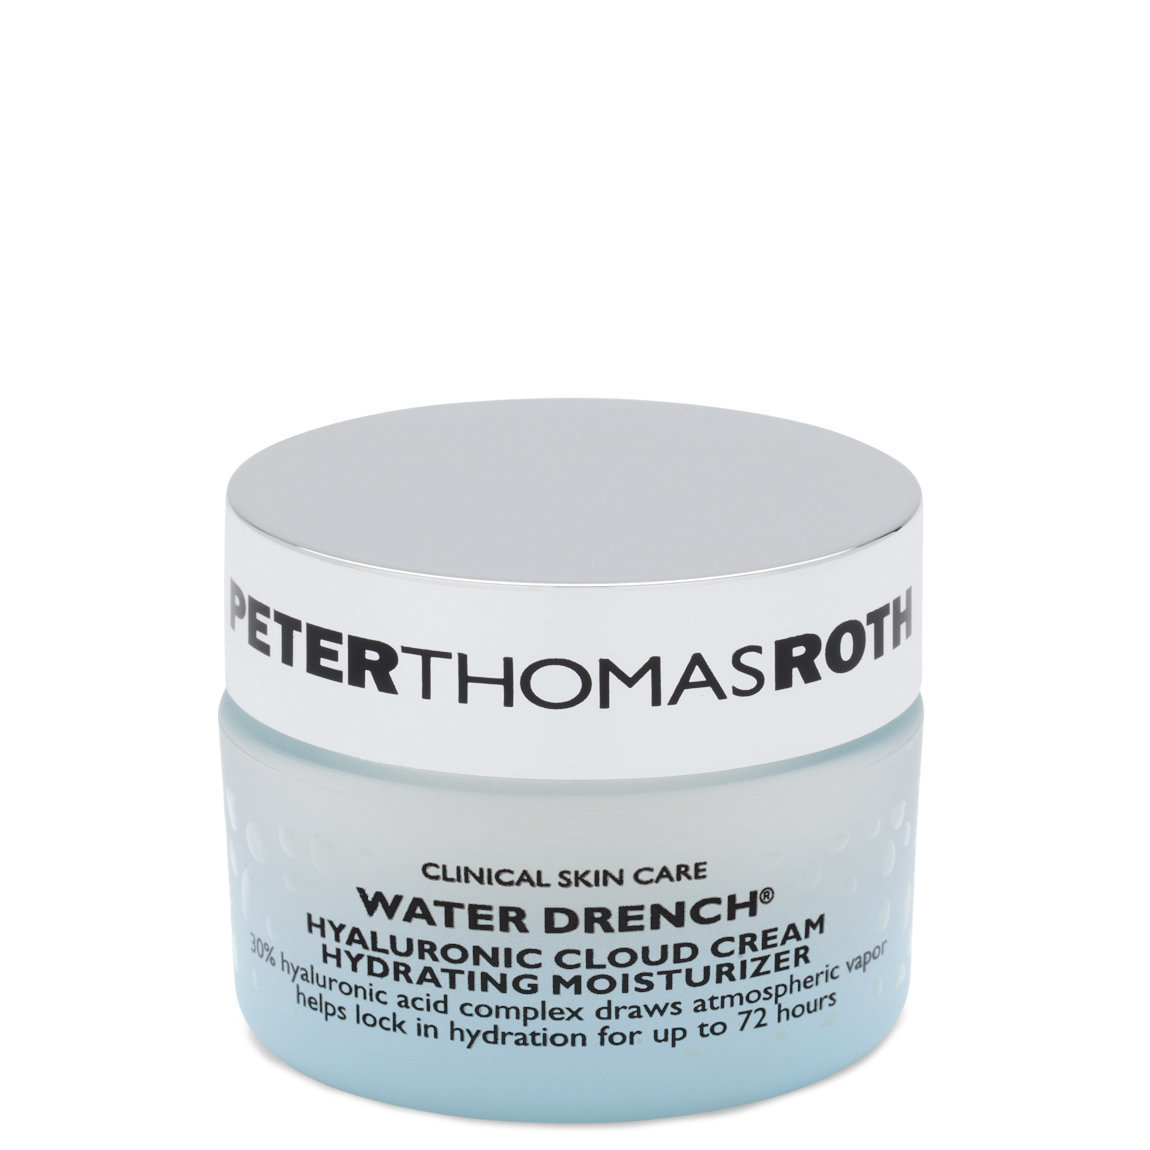 Peter Thomas Roth Water Drench Hyaluronic Cloud Cream Hydrating Moisturizer 0.67 oz product swatch.